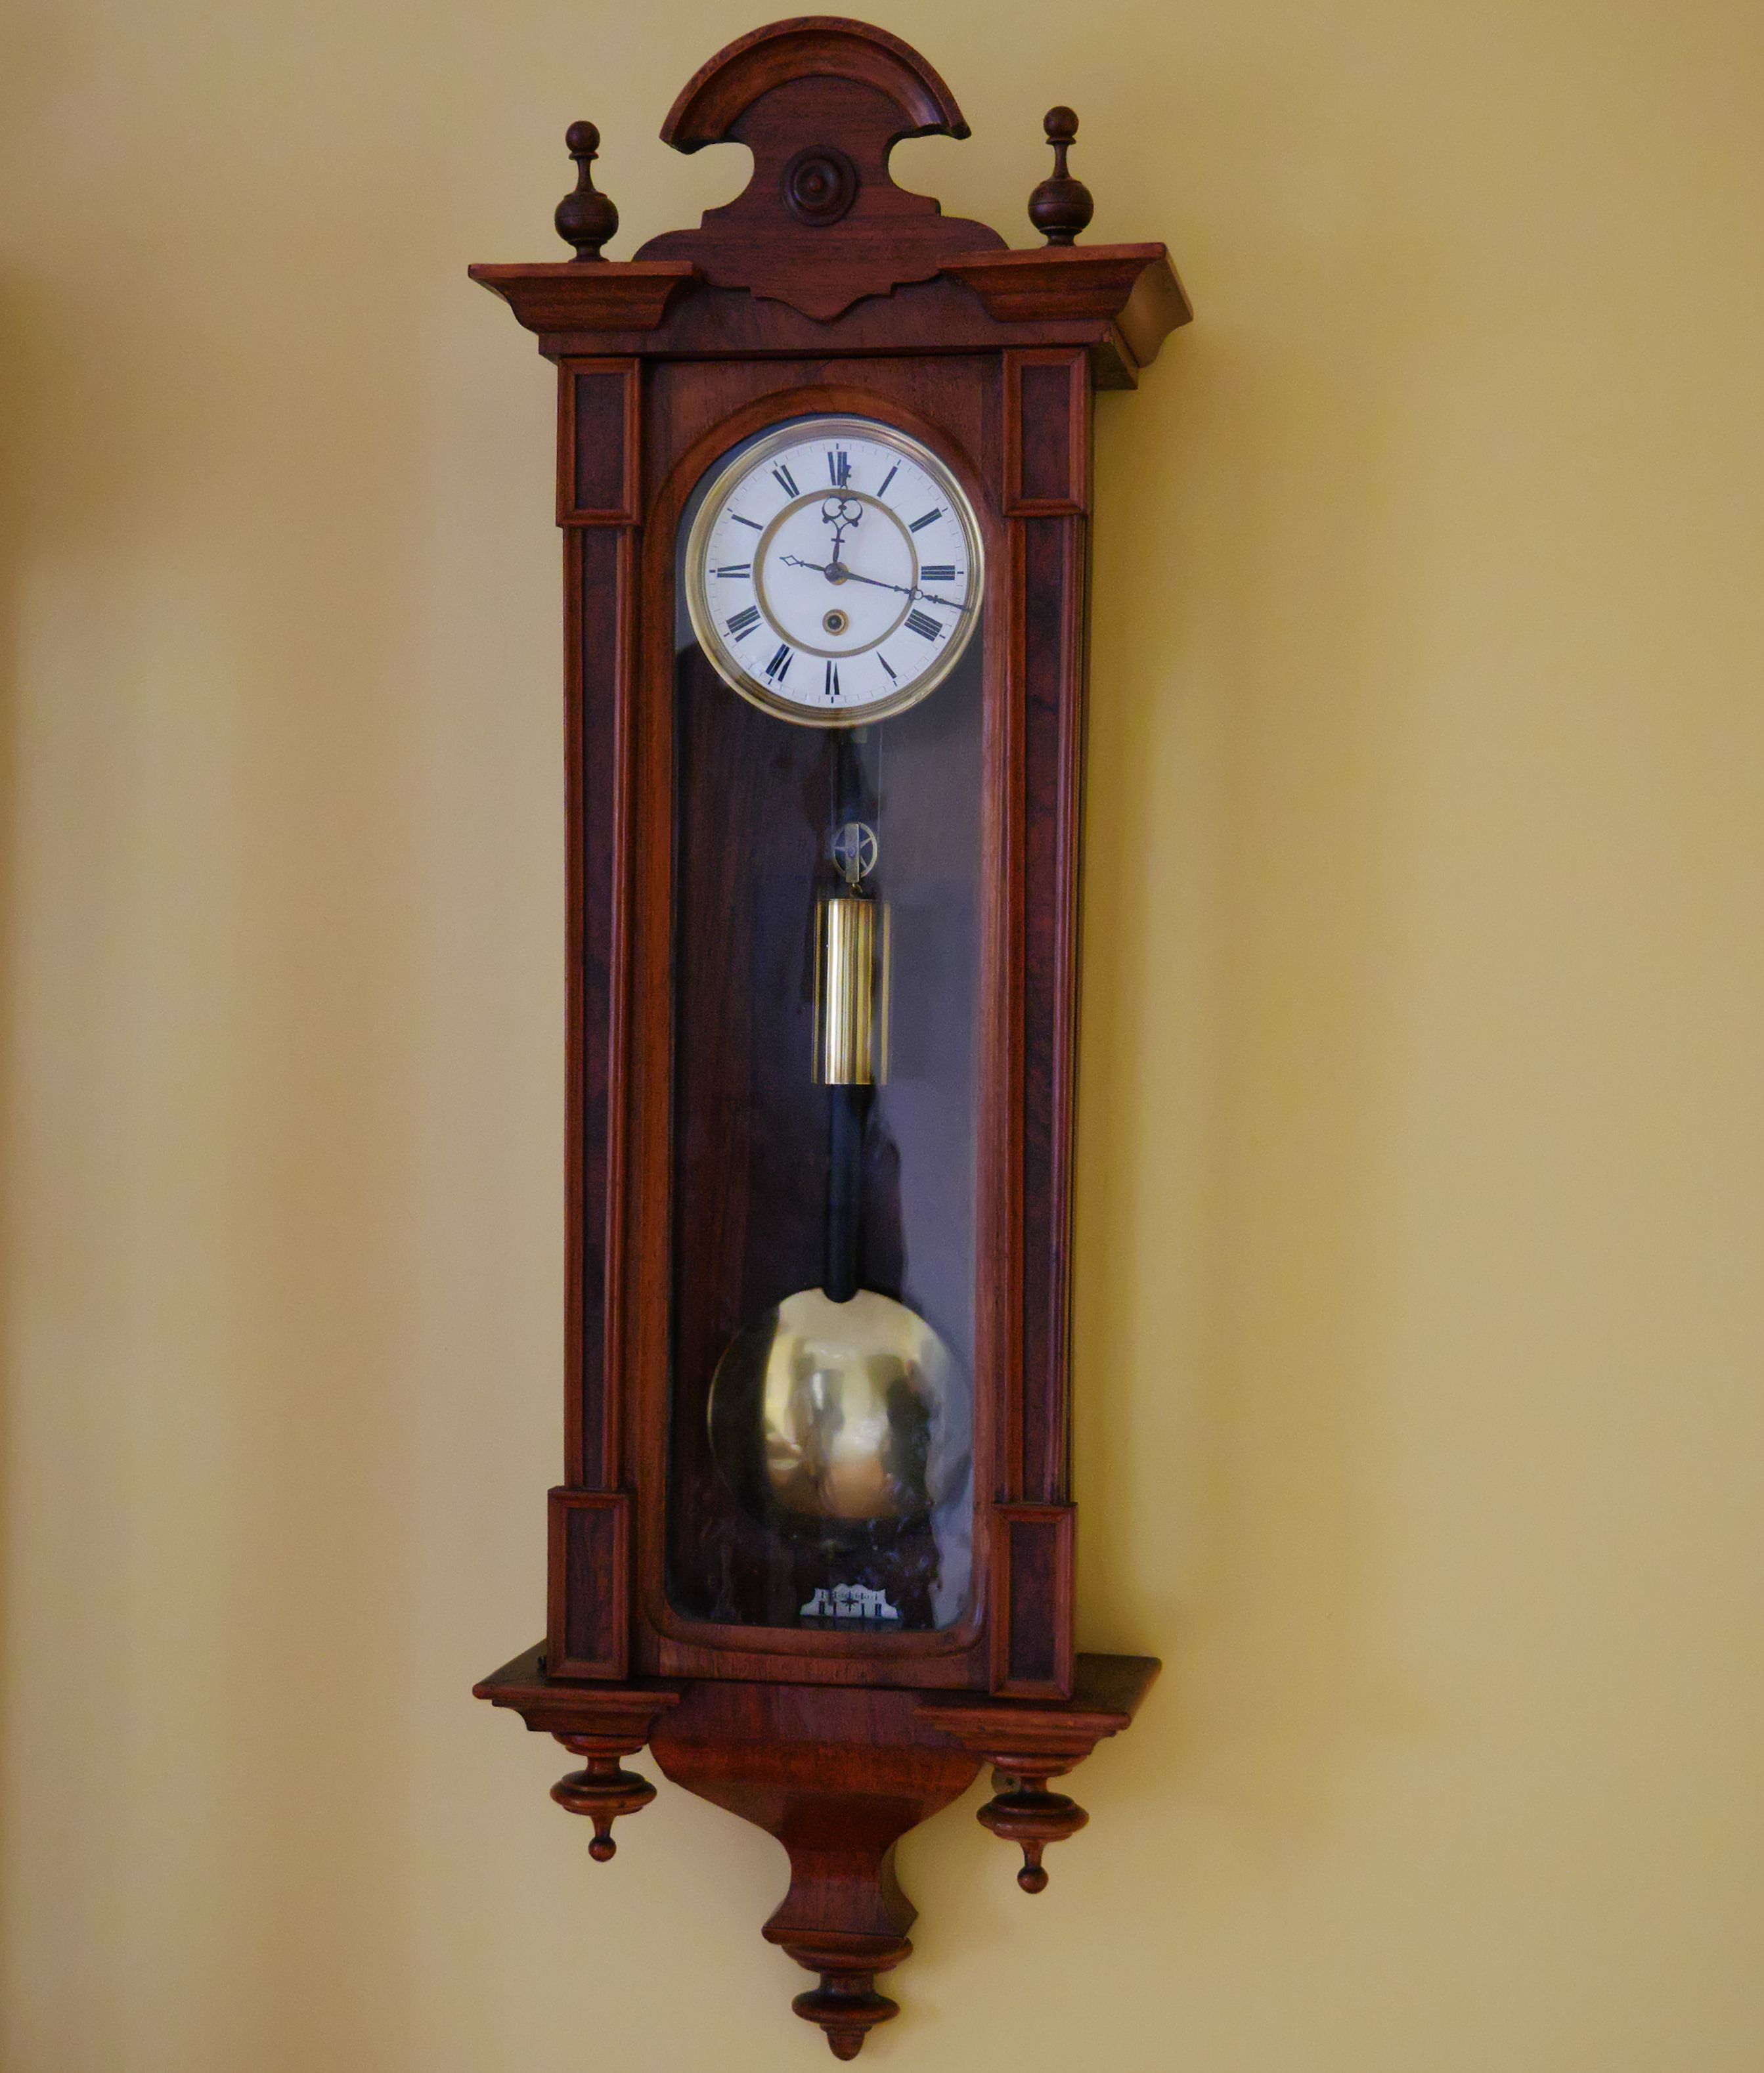 What is my clock worth? – Antique and Vintage Clock